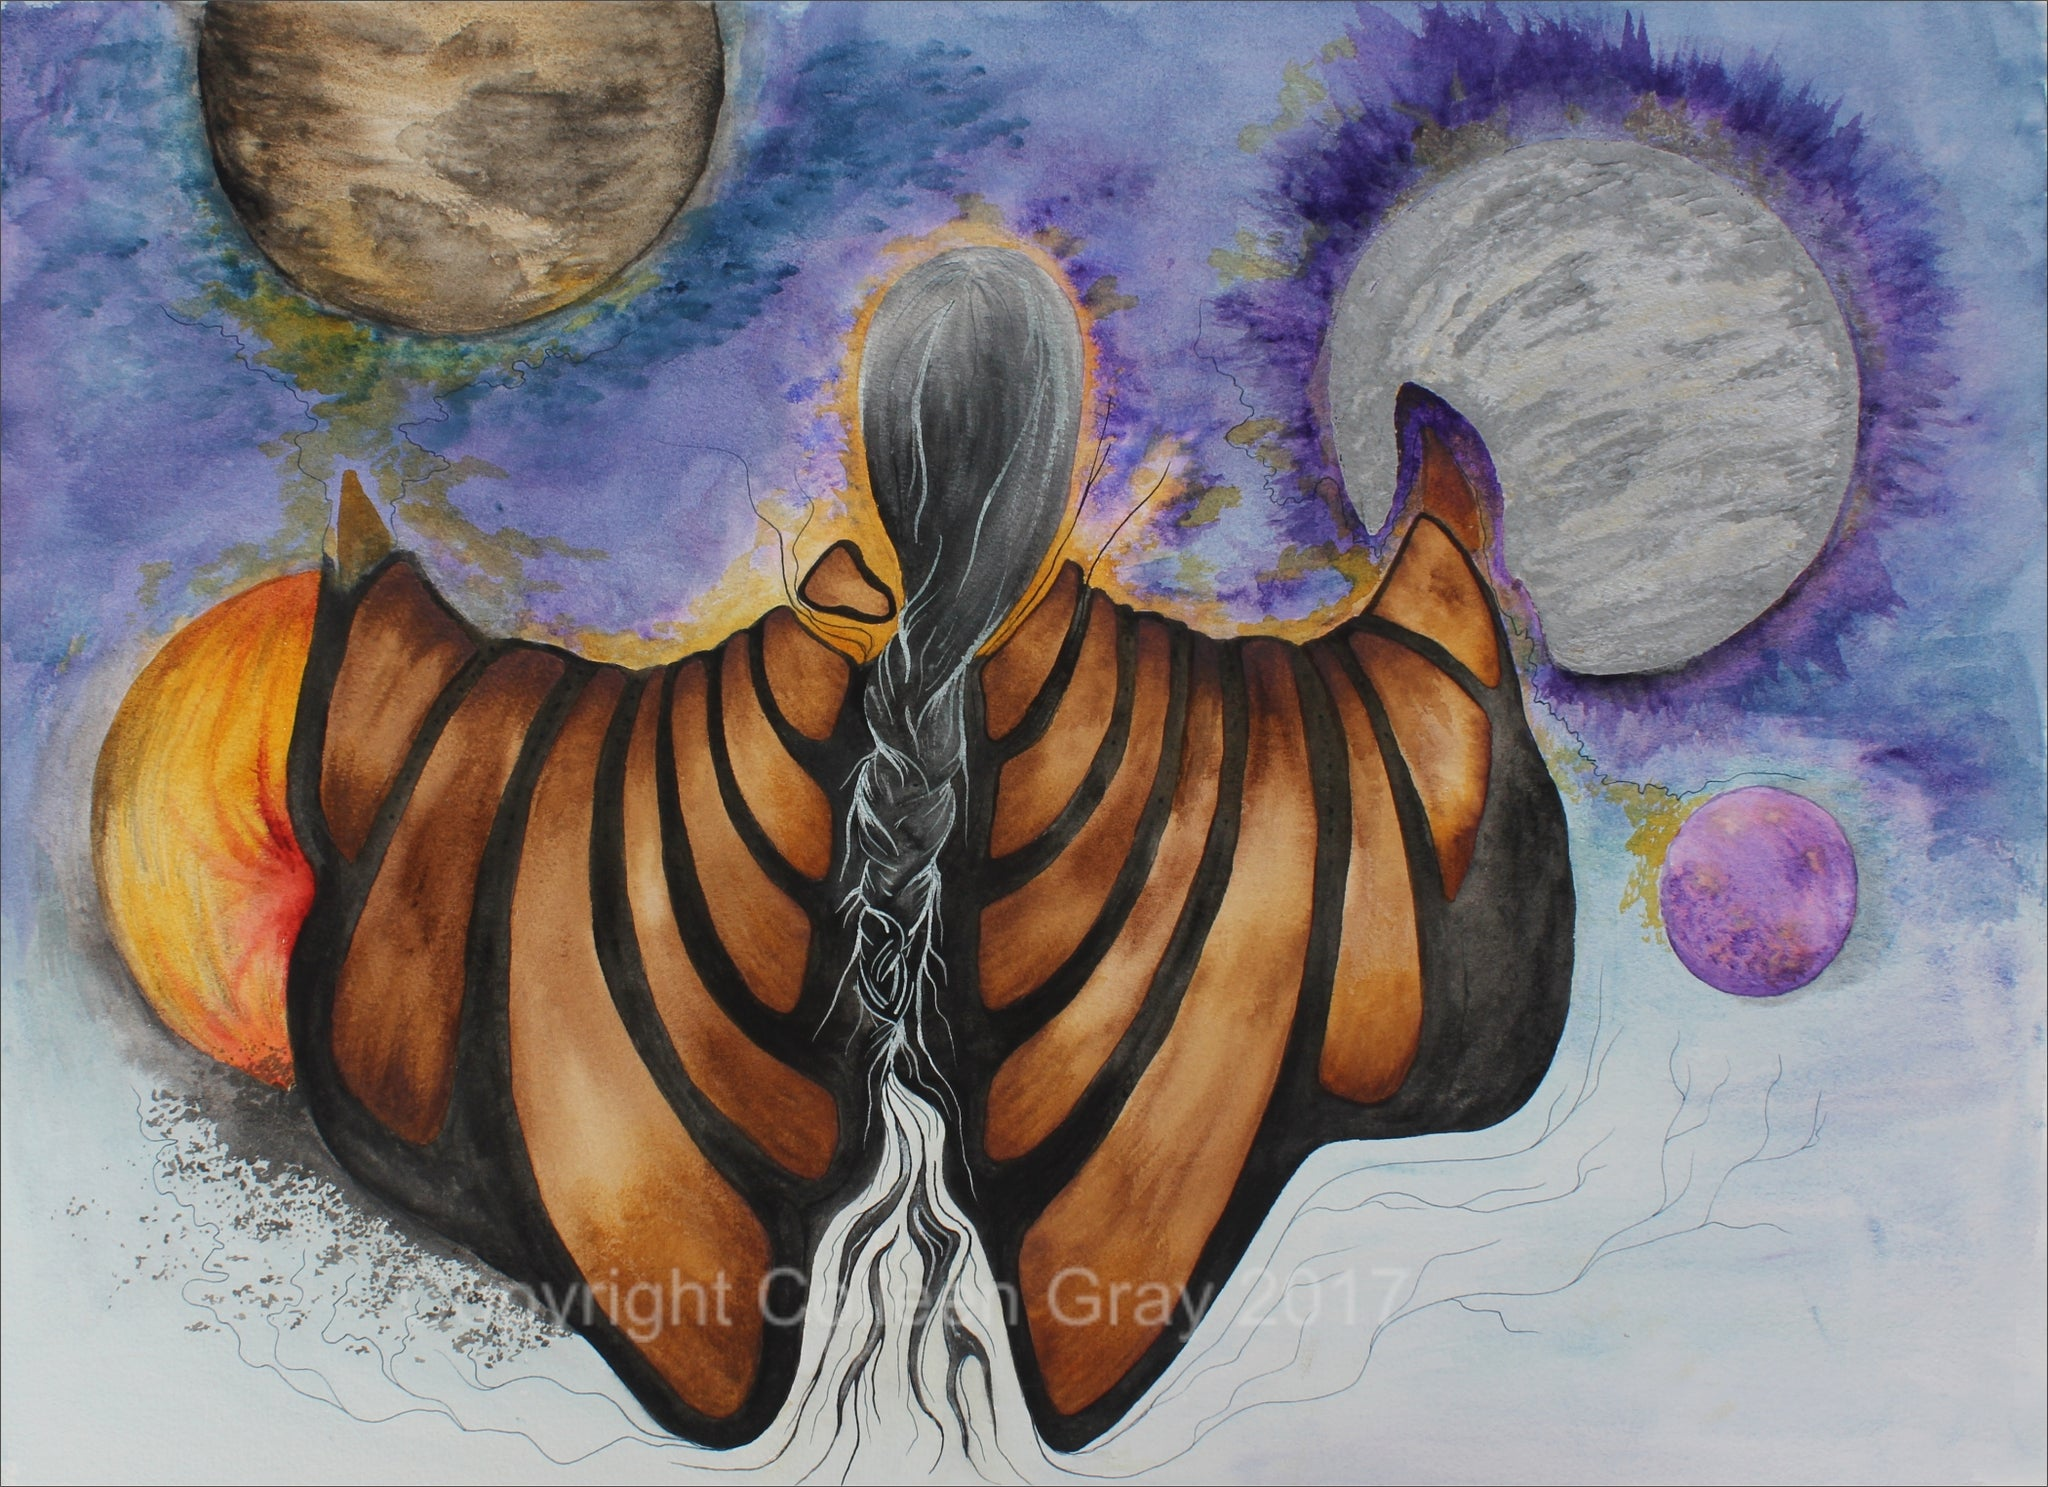 Image of Title: Universal Language 16x20 archival print by Metis Artist Colleen Gray Indigenous Canadian Art Work. Horizontal. Woman with long hair. Can be viewed upside down. For sale at https://artforaidshop.ca